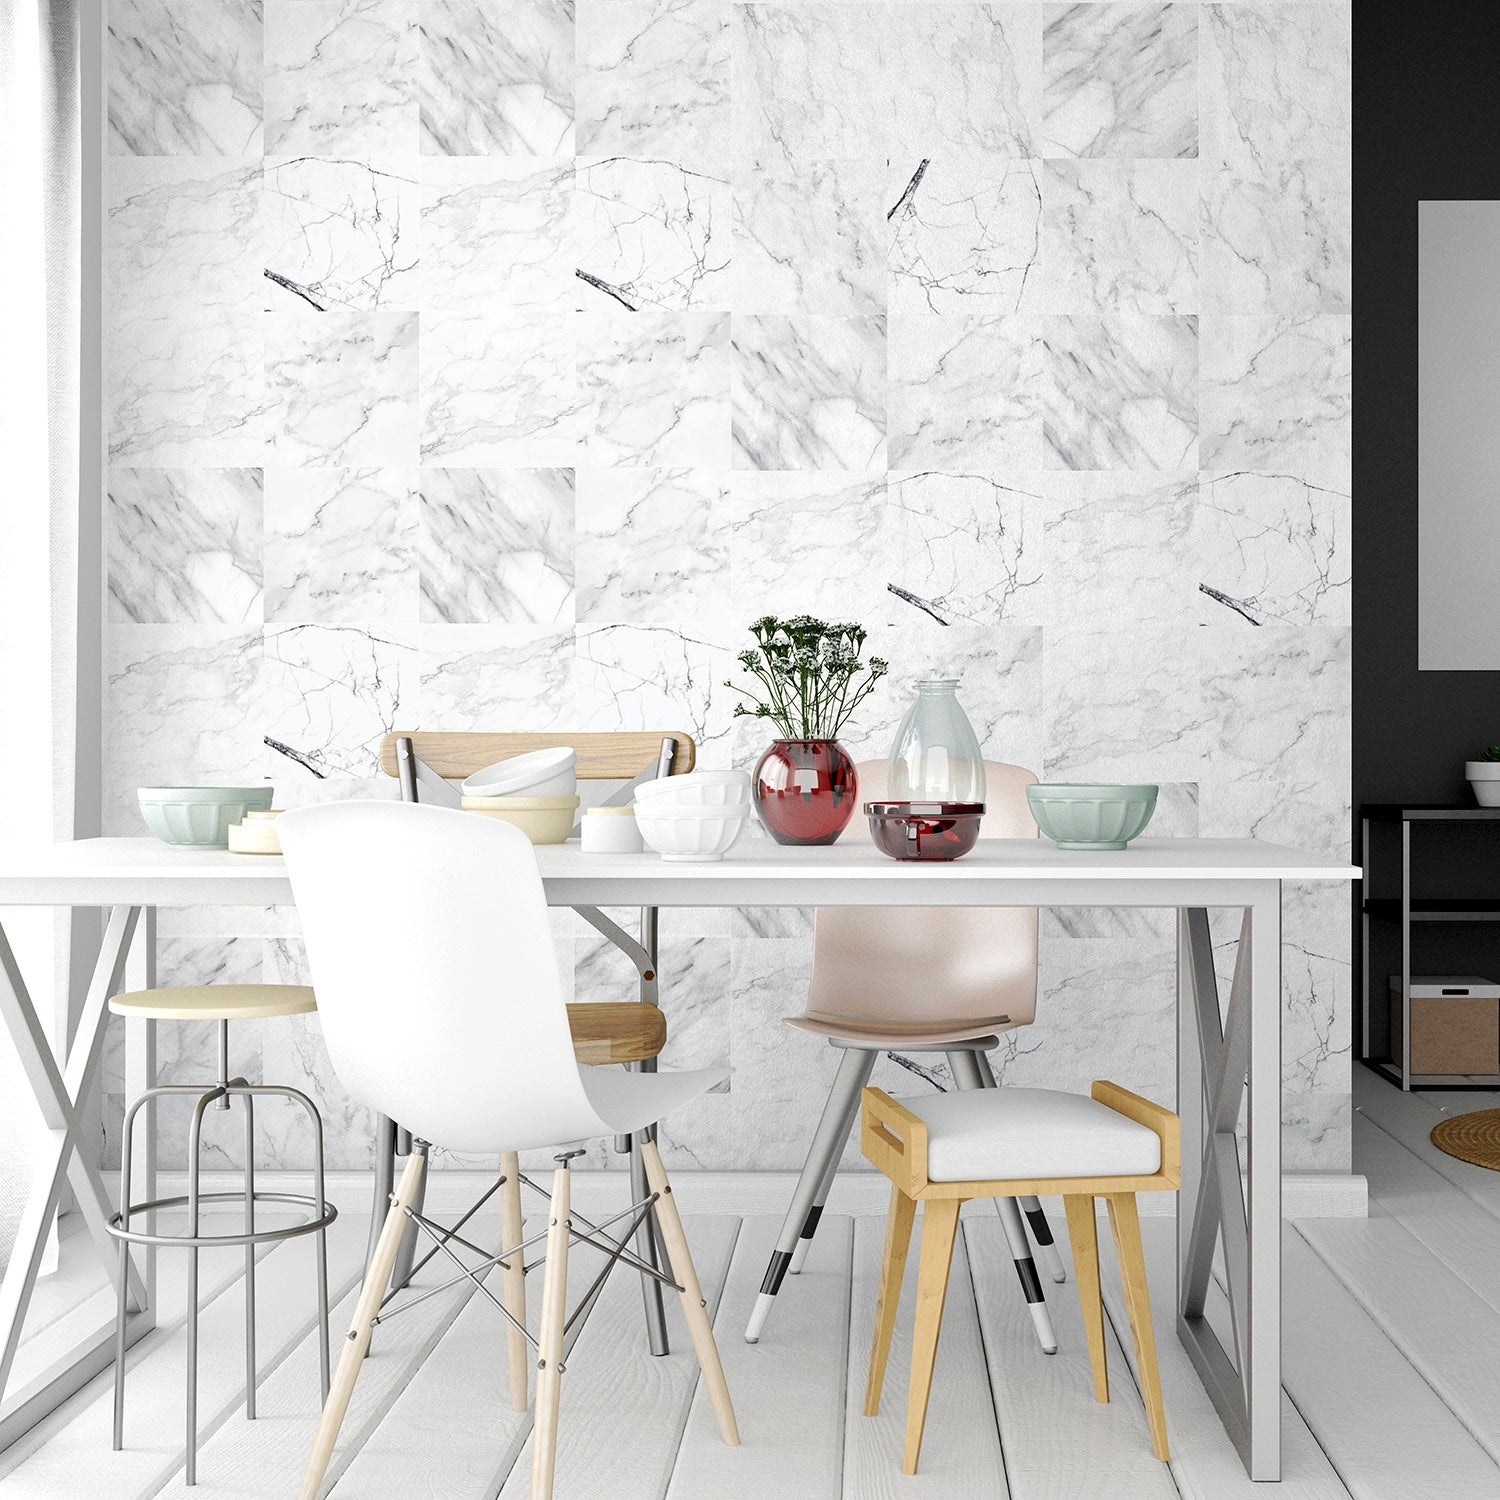 Walplus Bathroom Kitchen Marble Wall Tile Stickers Peel And Sticks Mix 12pcs 8 X8 Overstock 31665170